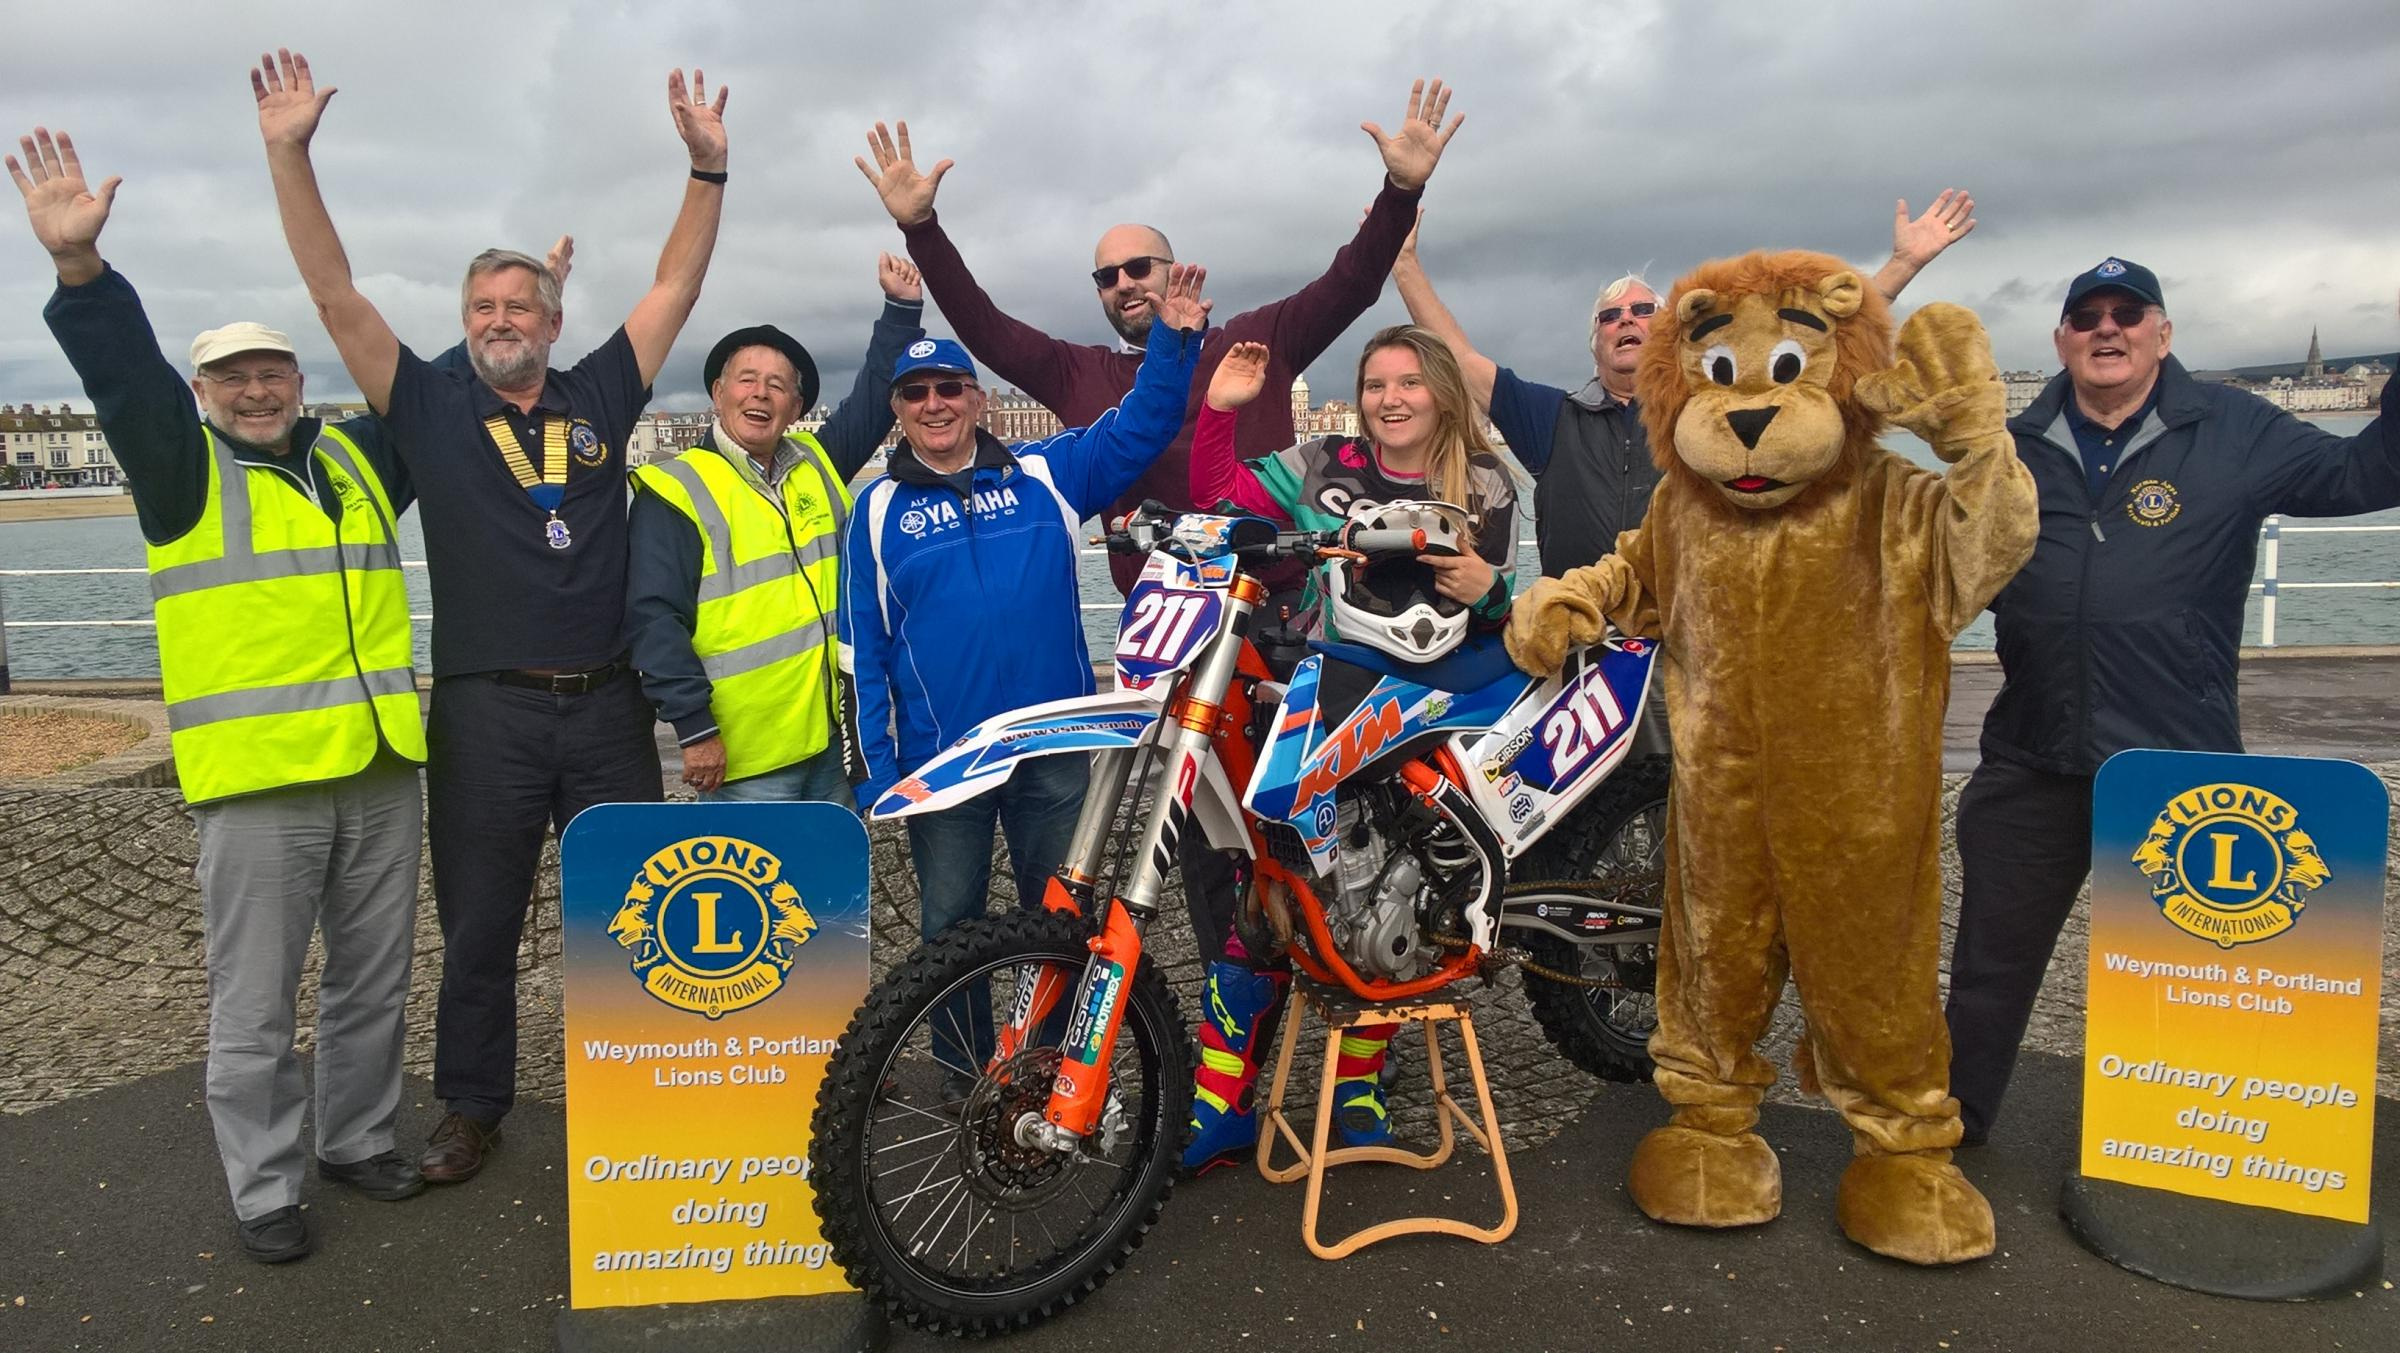 Representatives and organisers from the W&P Lions Club and Purbeck Motocross Club with British motocross rider Charlotte Hall